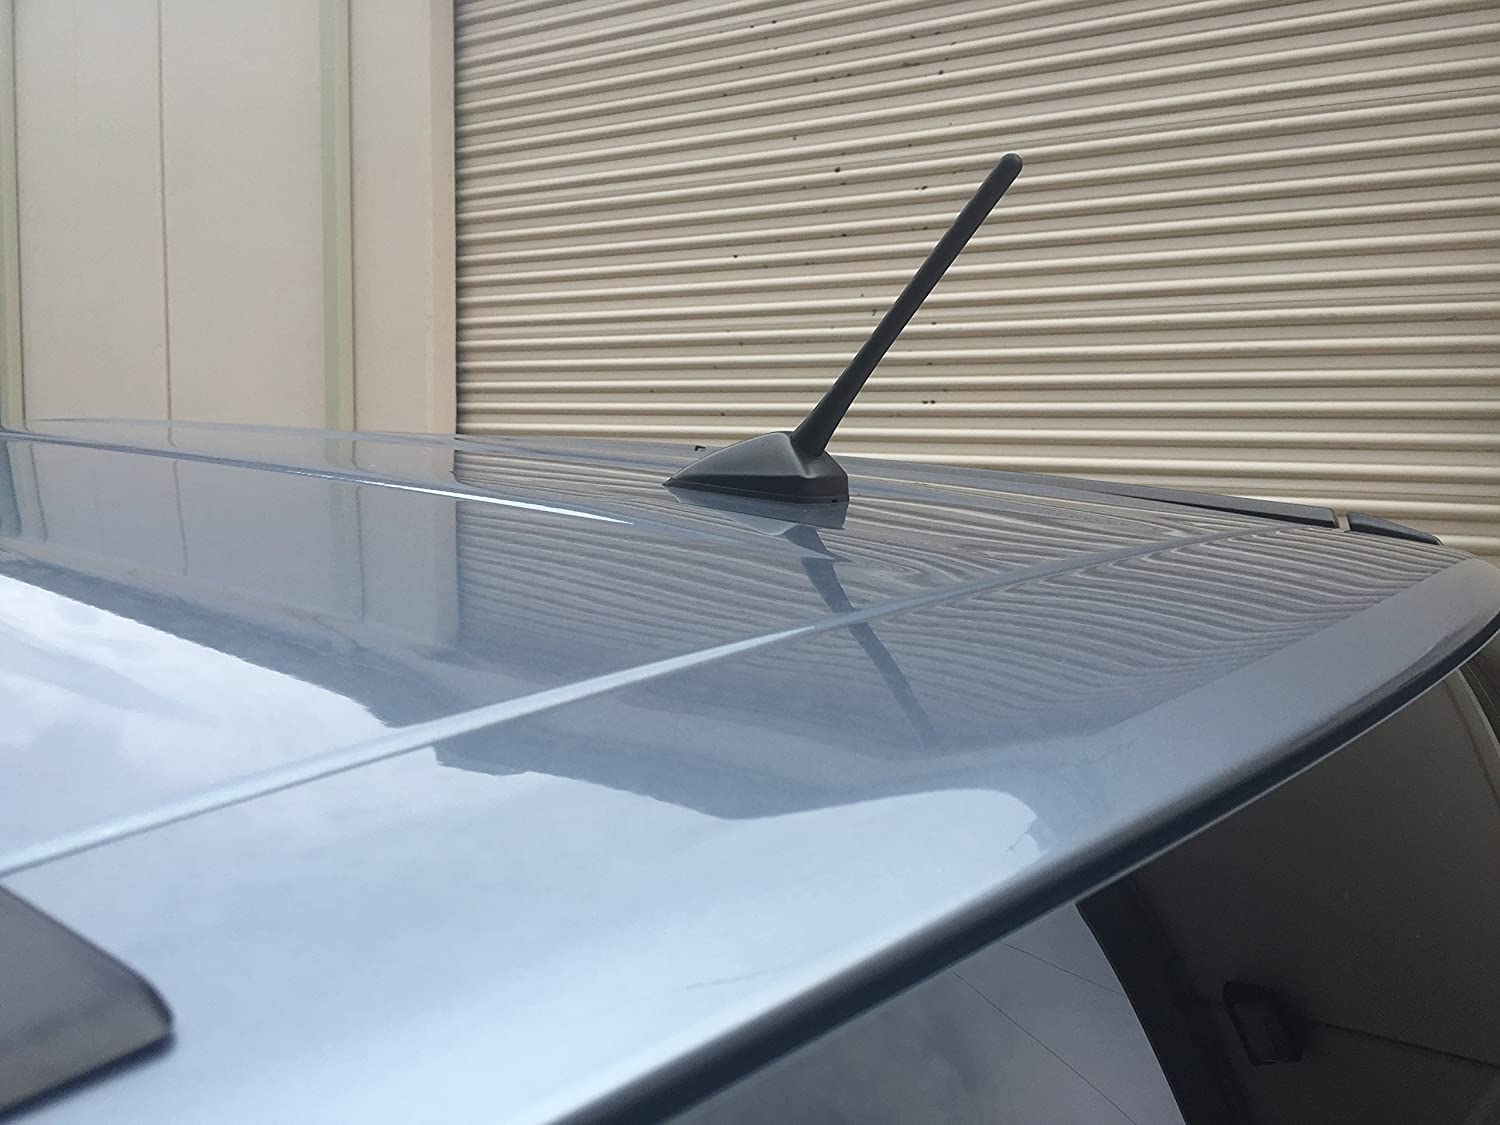 Antennax Oem Style 7 Inch Antenna For Honda Cr V Online Store 2010 Crv Parts Automotive